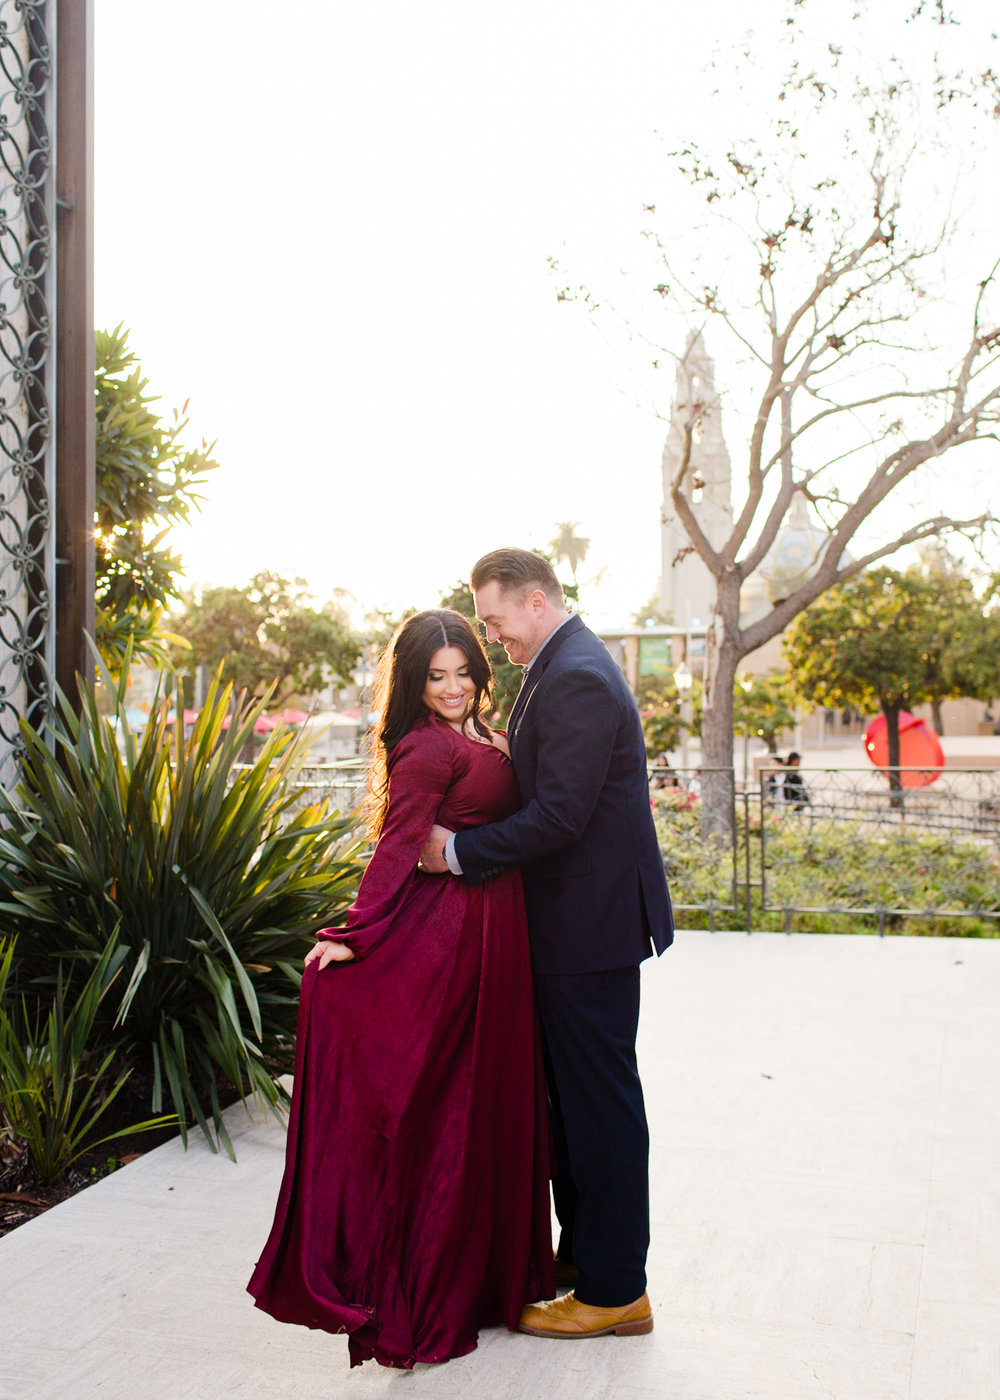 katherine-beth-photography-san-diego-wedding-photographer-san-diego-family-photographer-balboa-park-engagement_014.jpg